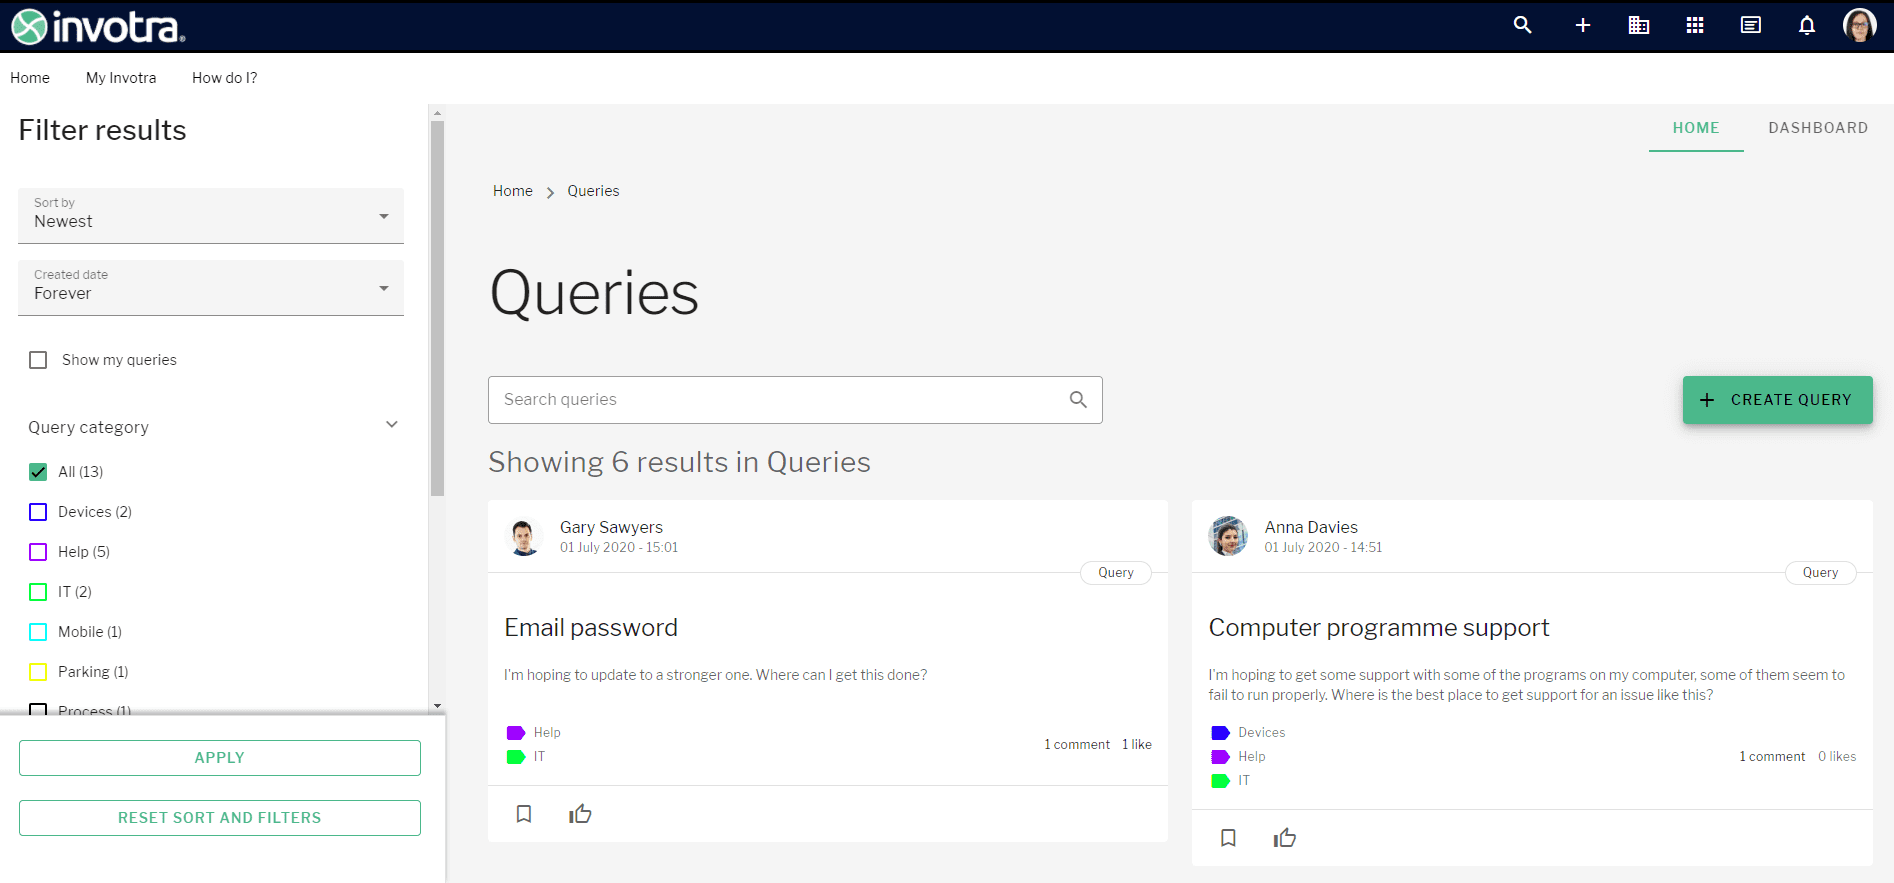 Queries landing page